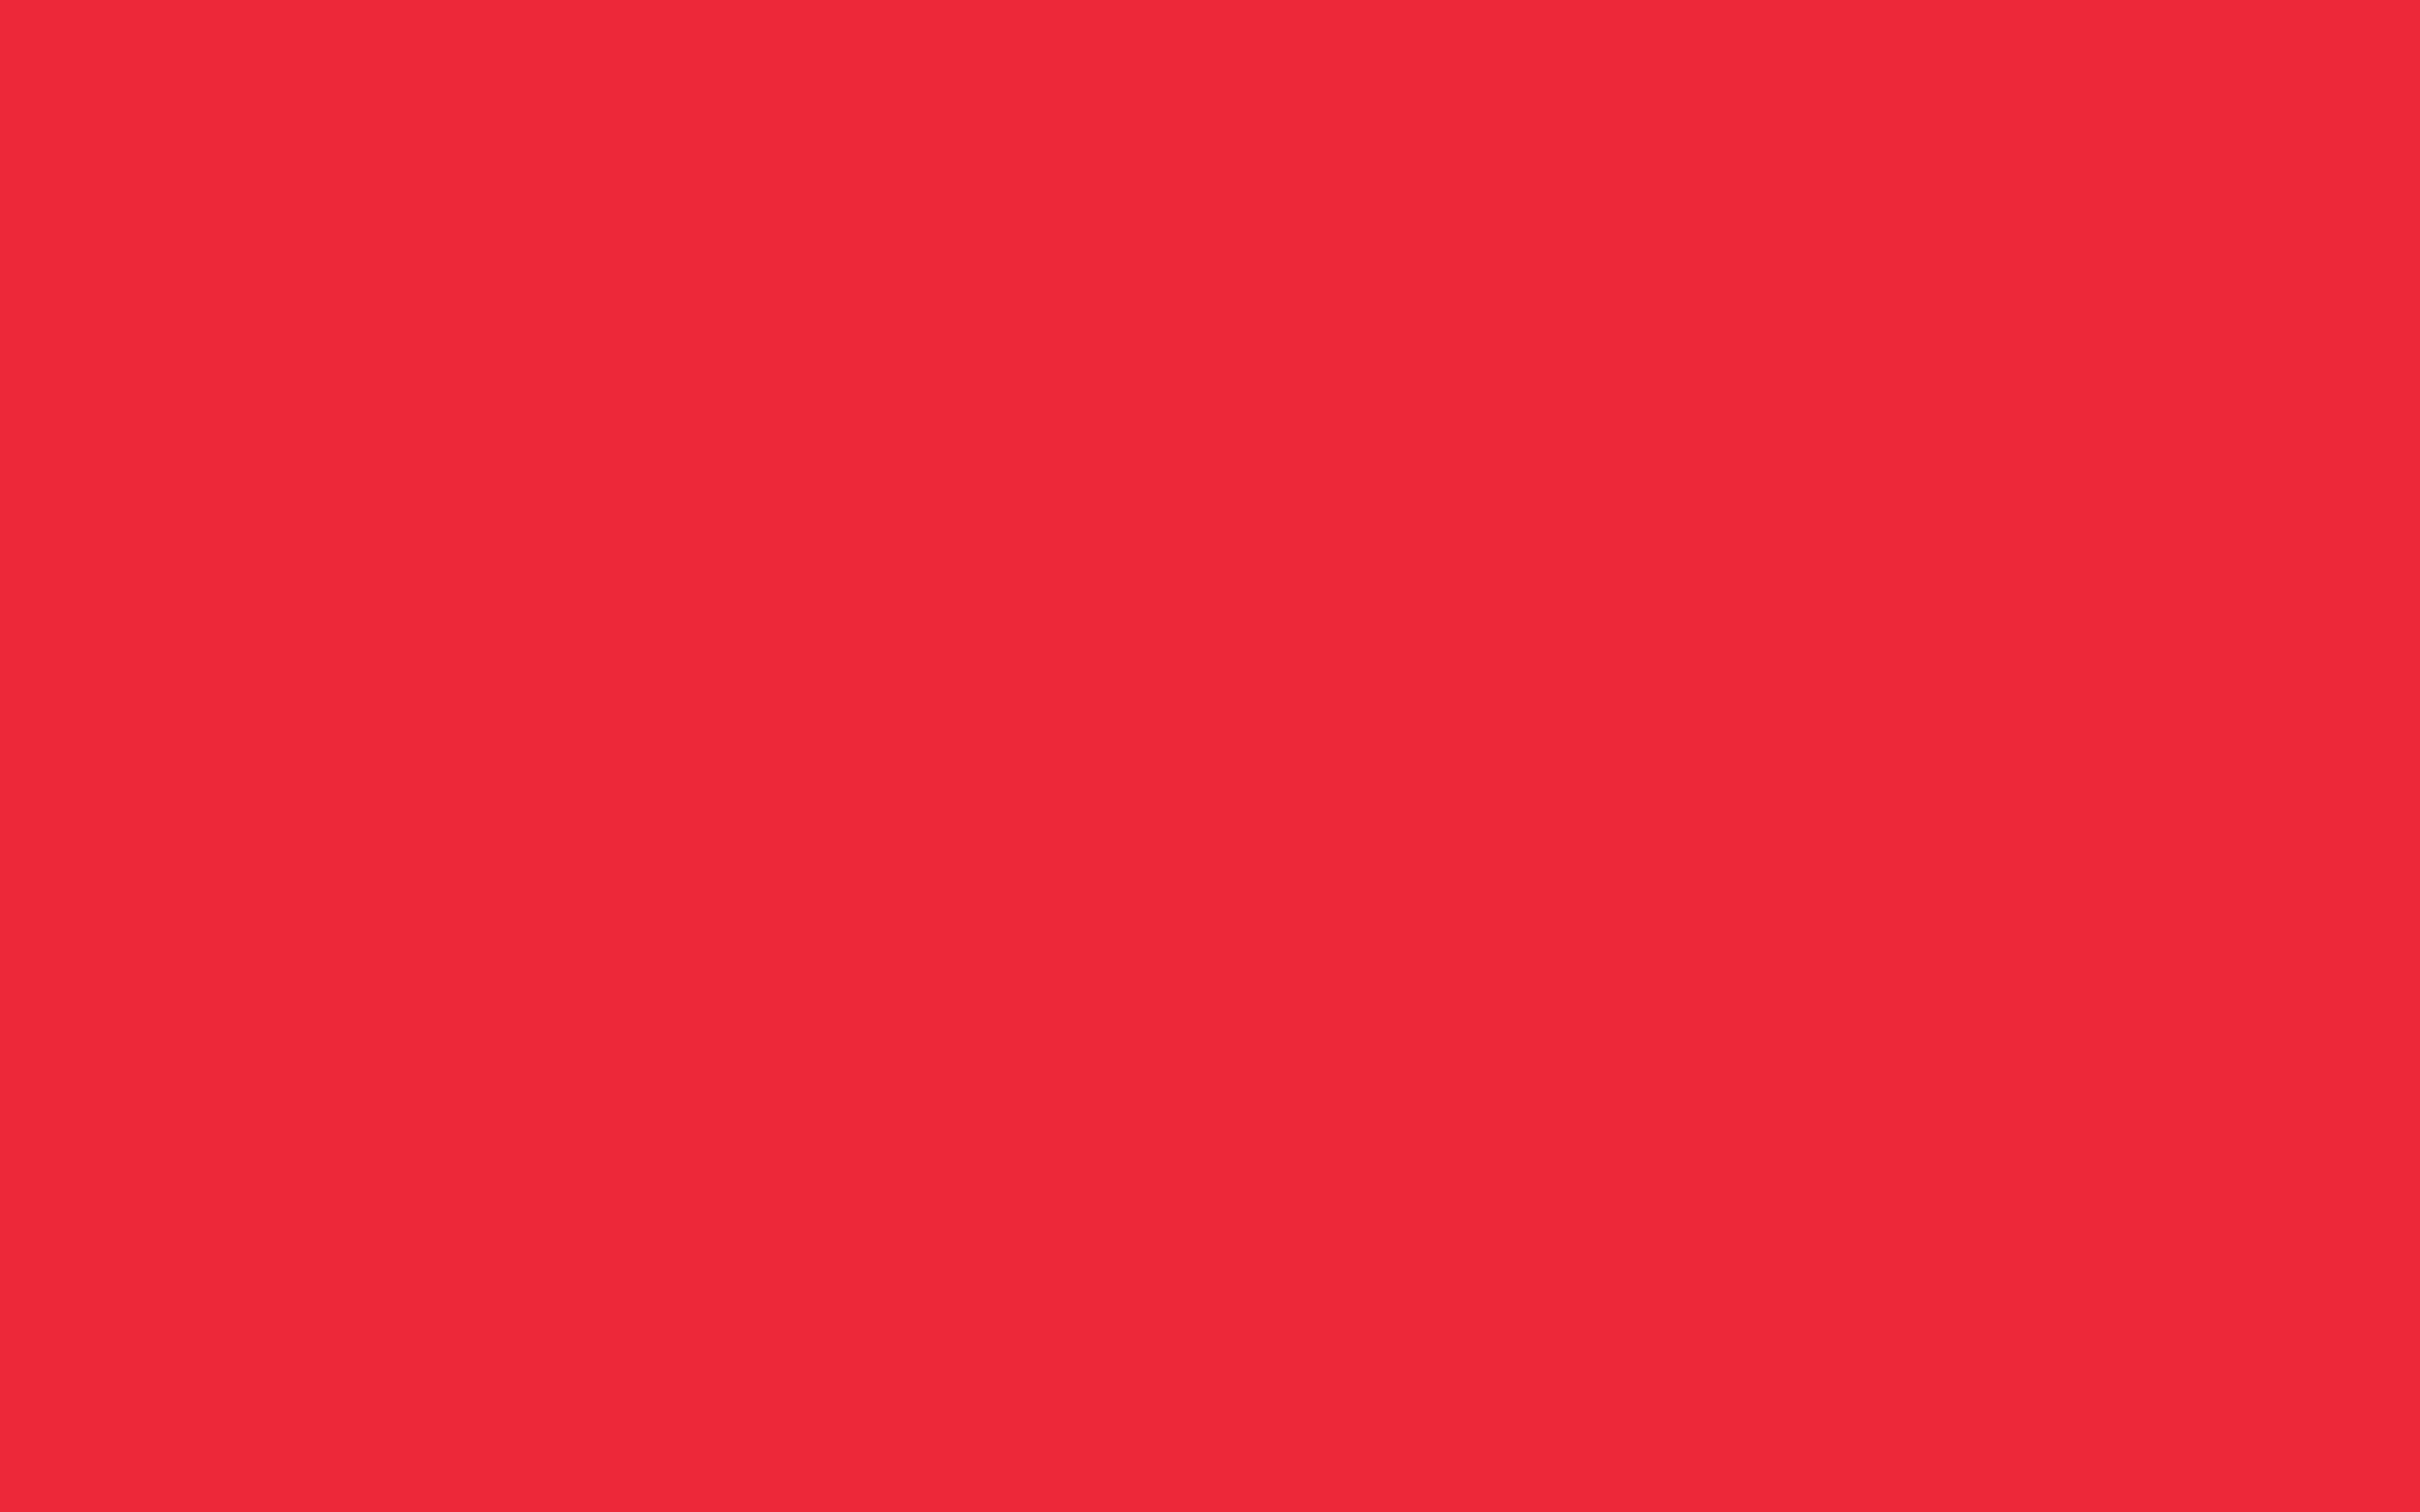 2560x1600 Imperial Red Solid Color Background